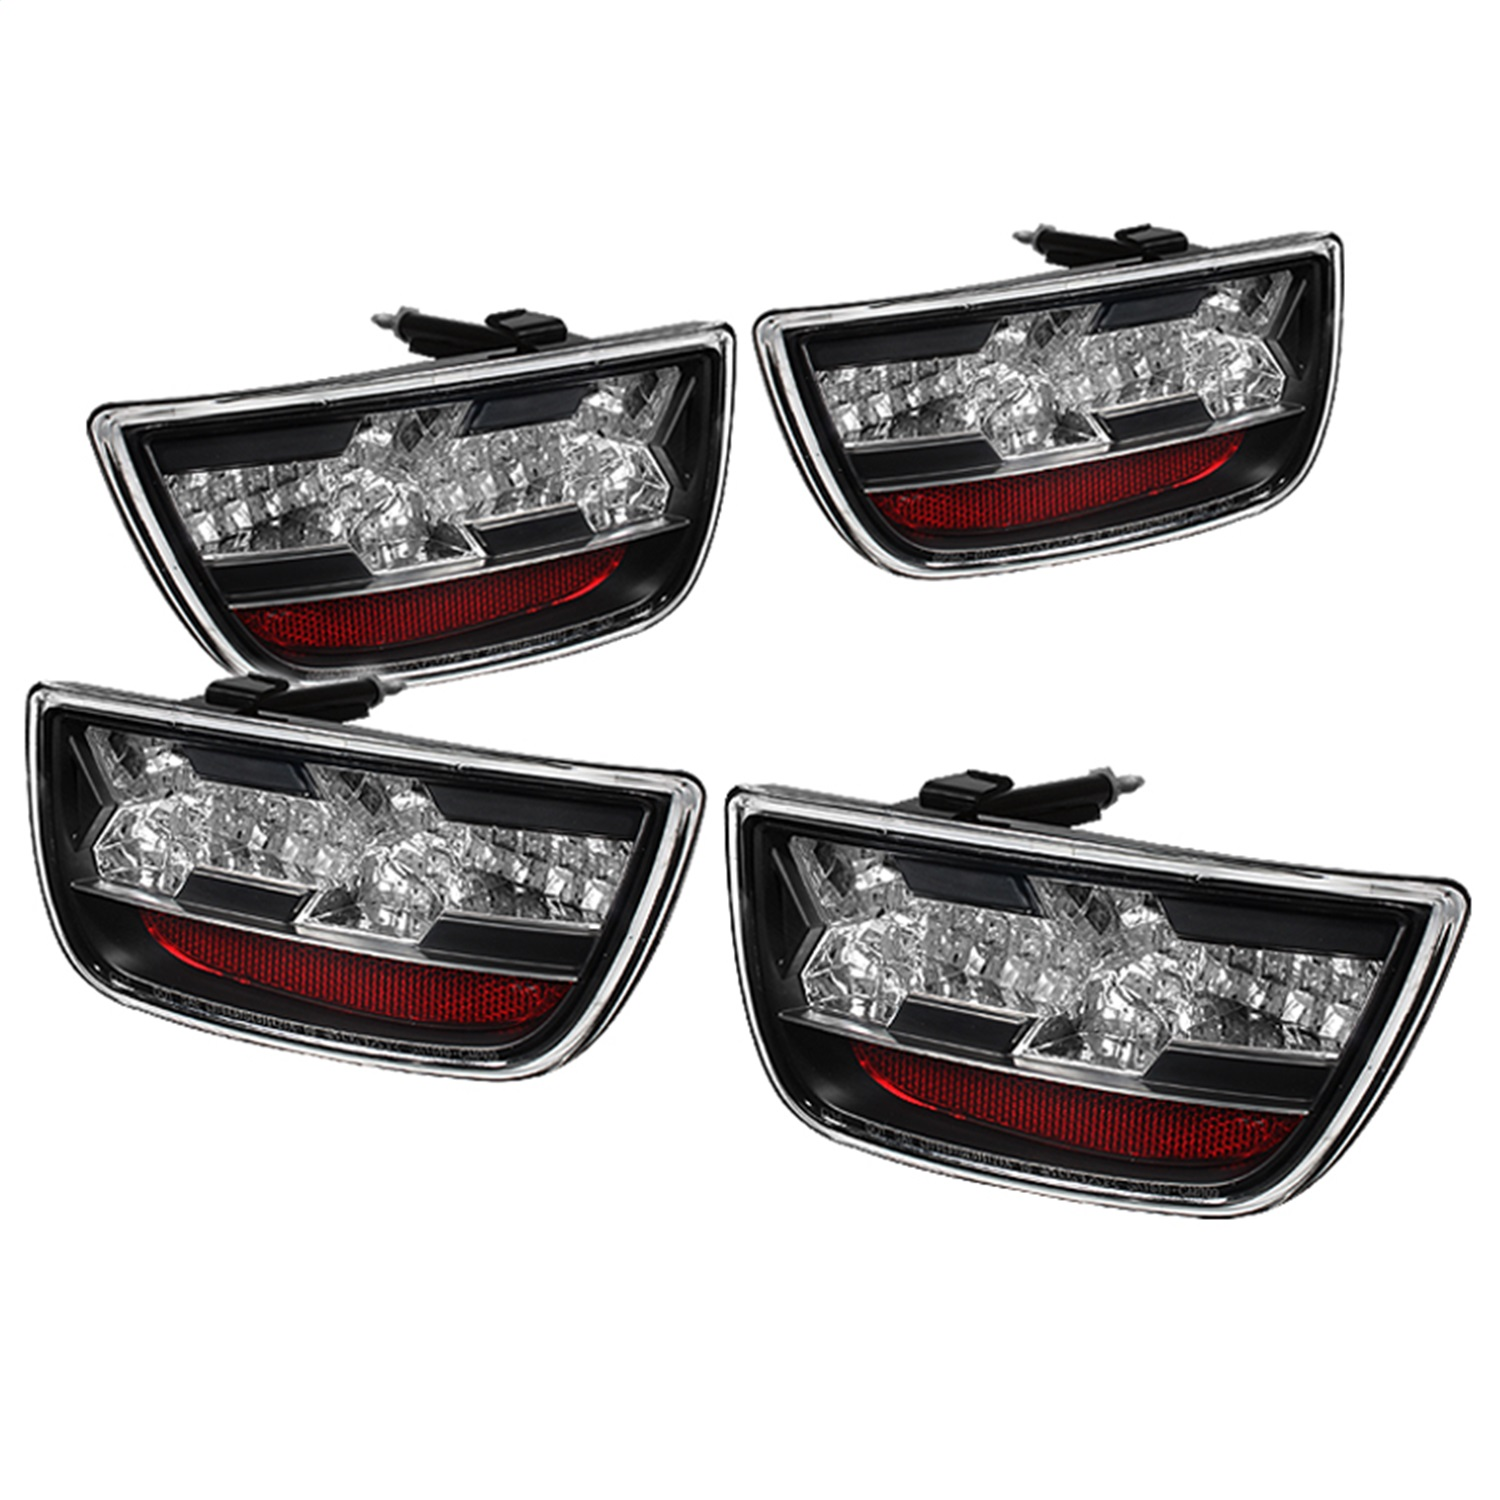 Spyder Auto 5032188 LED Tail Lights Fits 10-13 Camaro